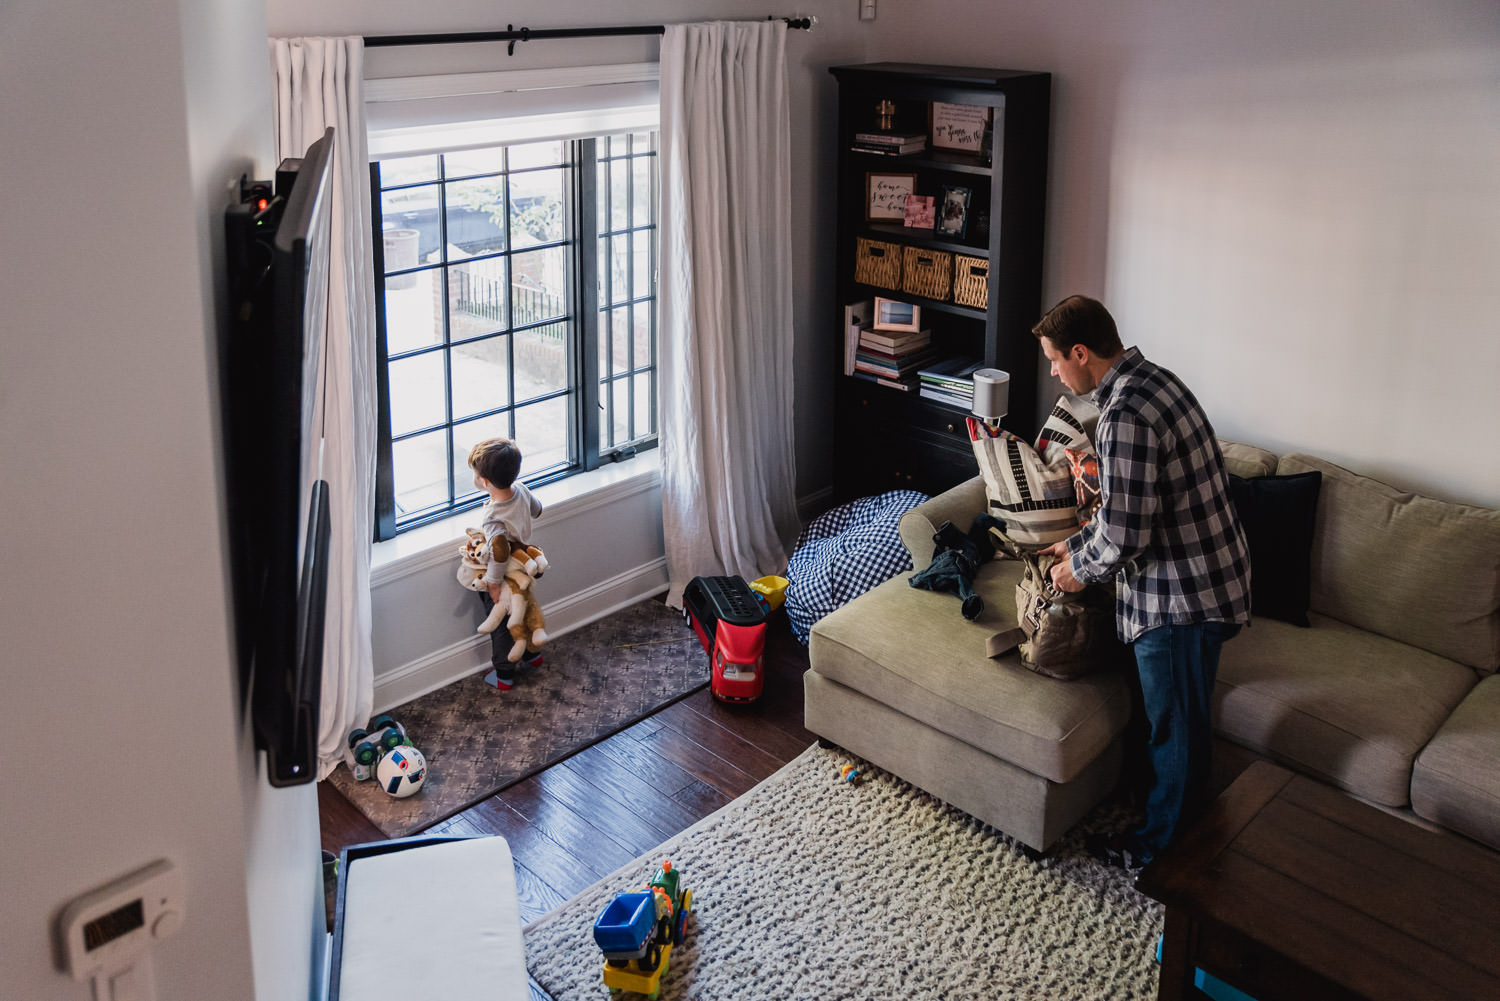 A boy and his father look out a large living room window.